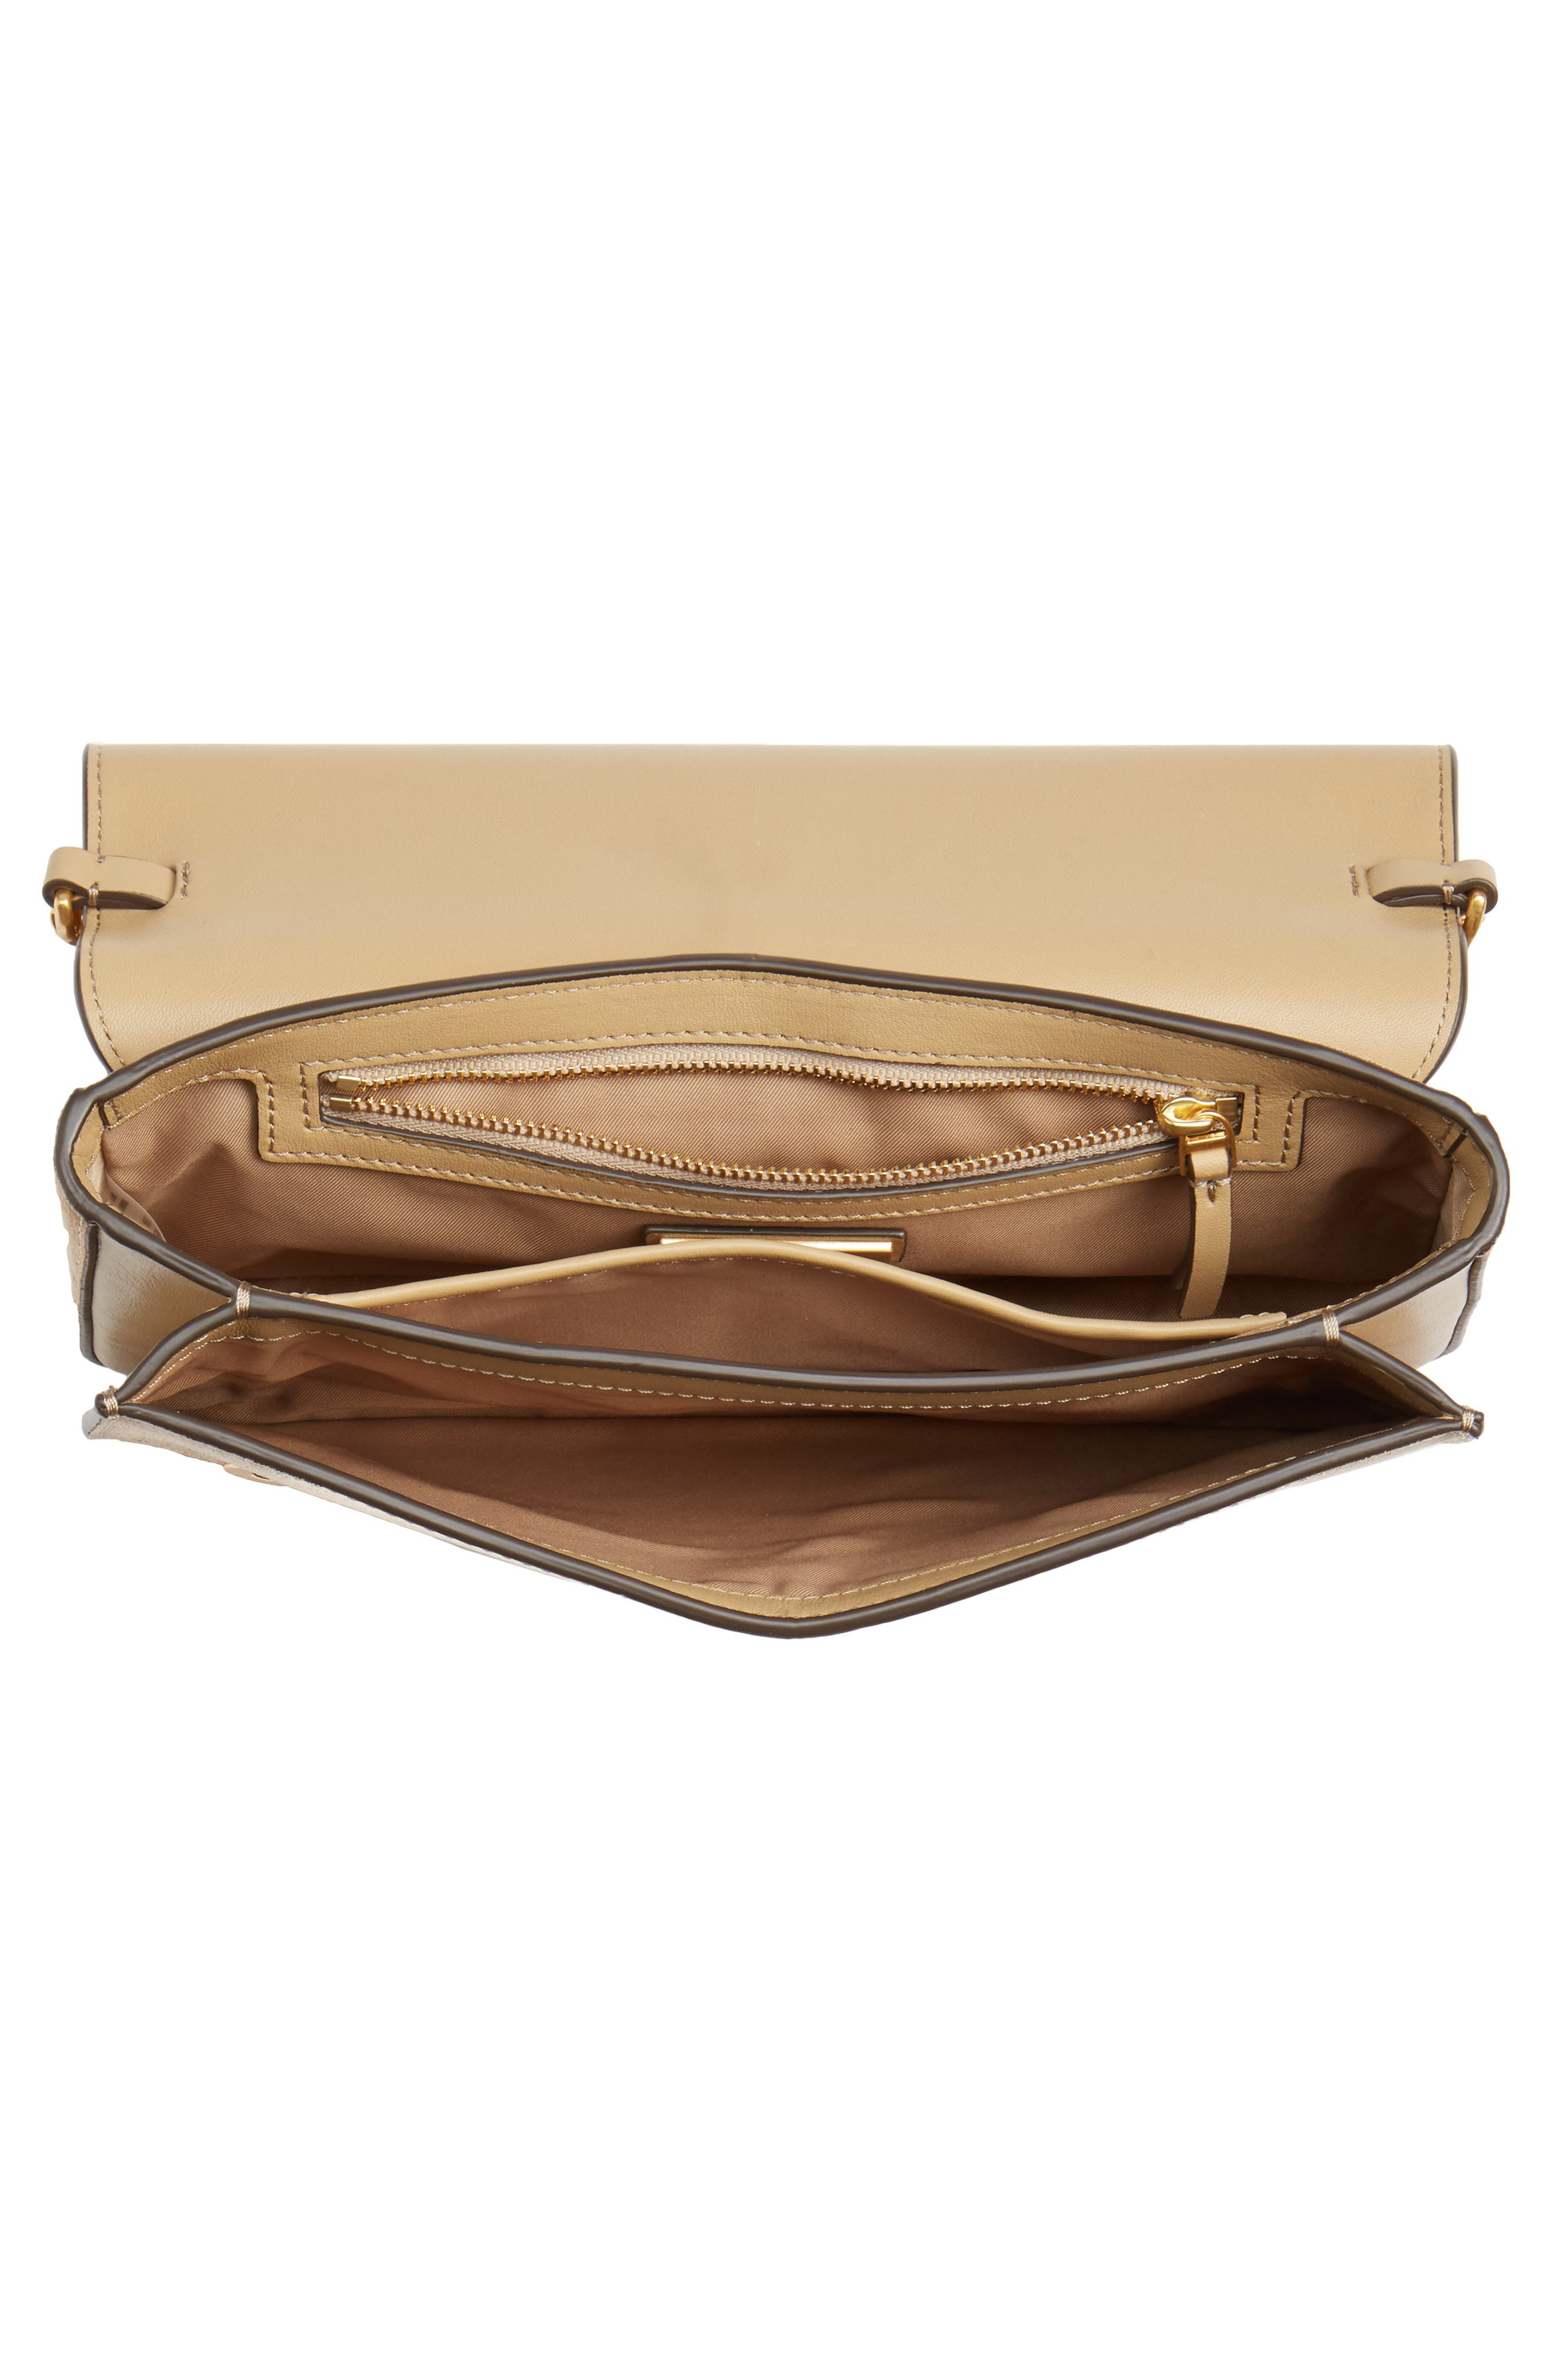 Chelsea Convertible Metallic Leather Clutch,                             Alternate thumbnail 4, color,                             710